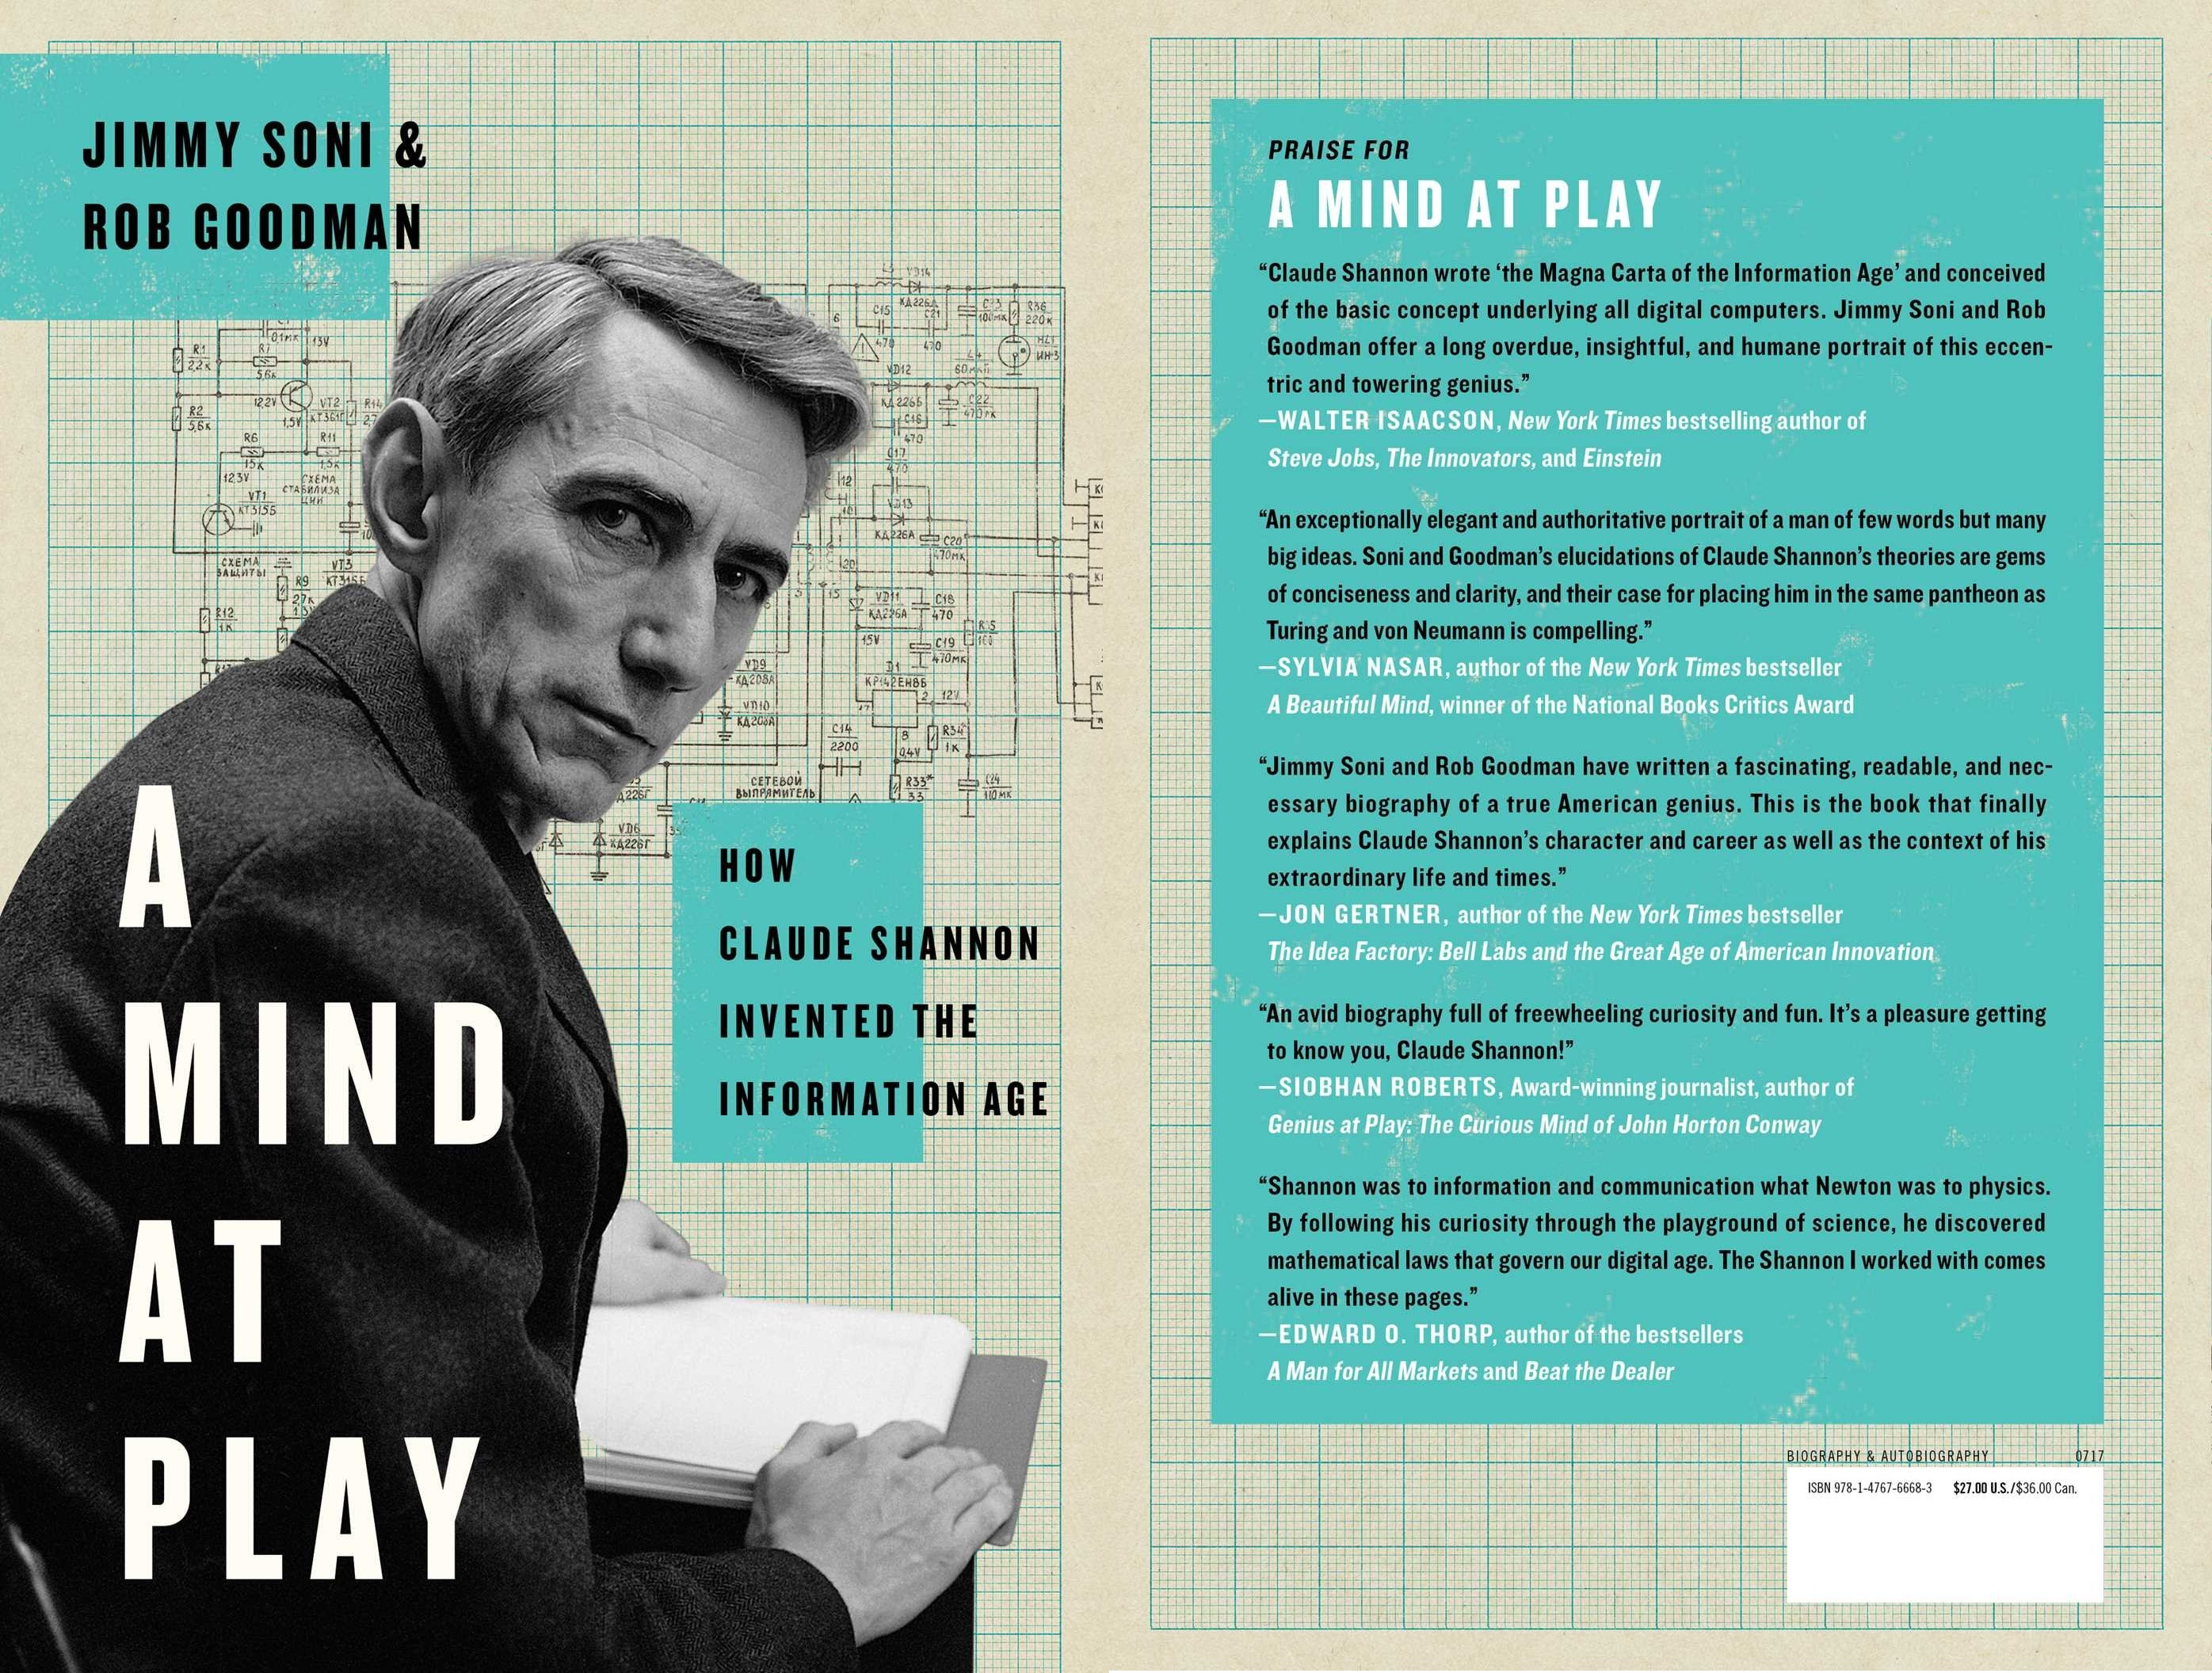  Read pages 16-55 of A Mind at Play by Jimmy Soni & Rob Goodman